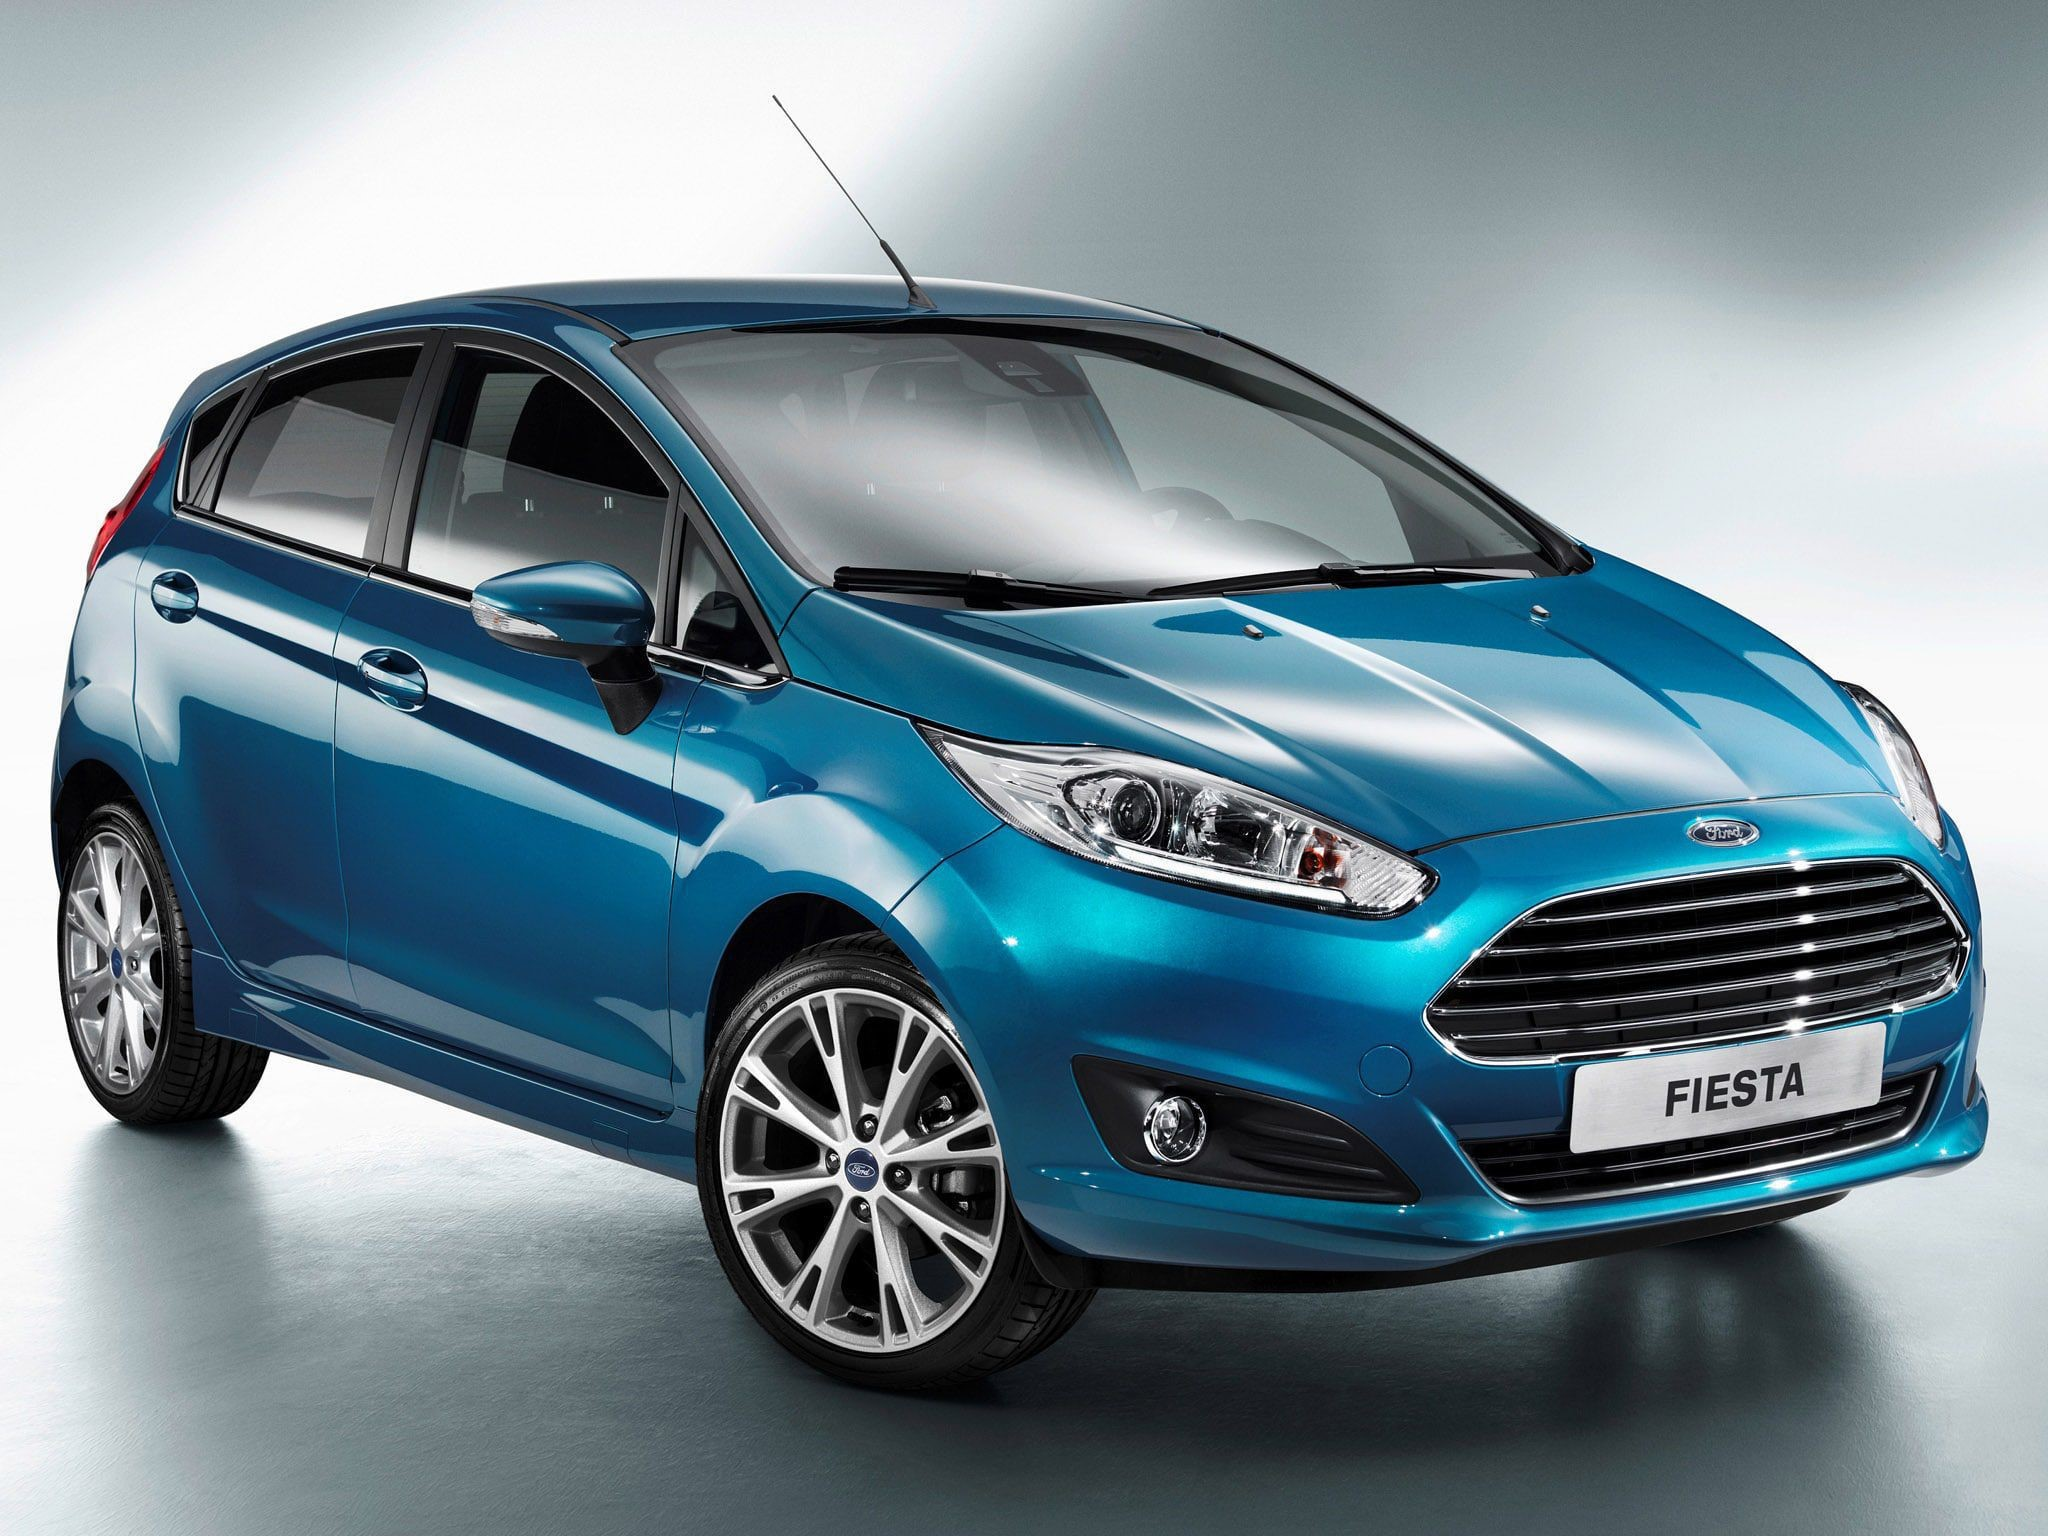 Ford Fiesta Background image